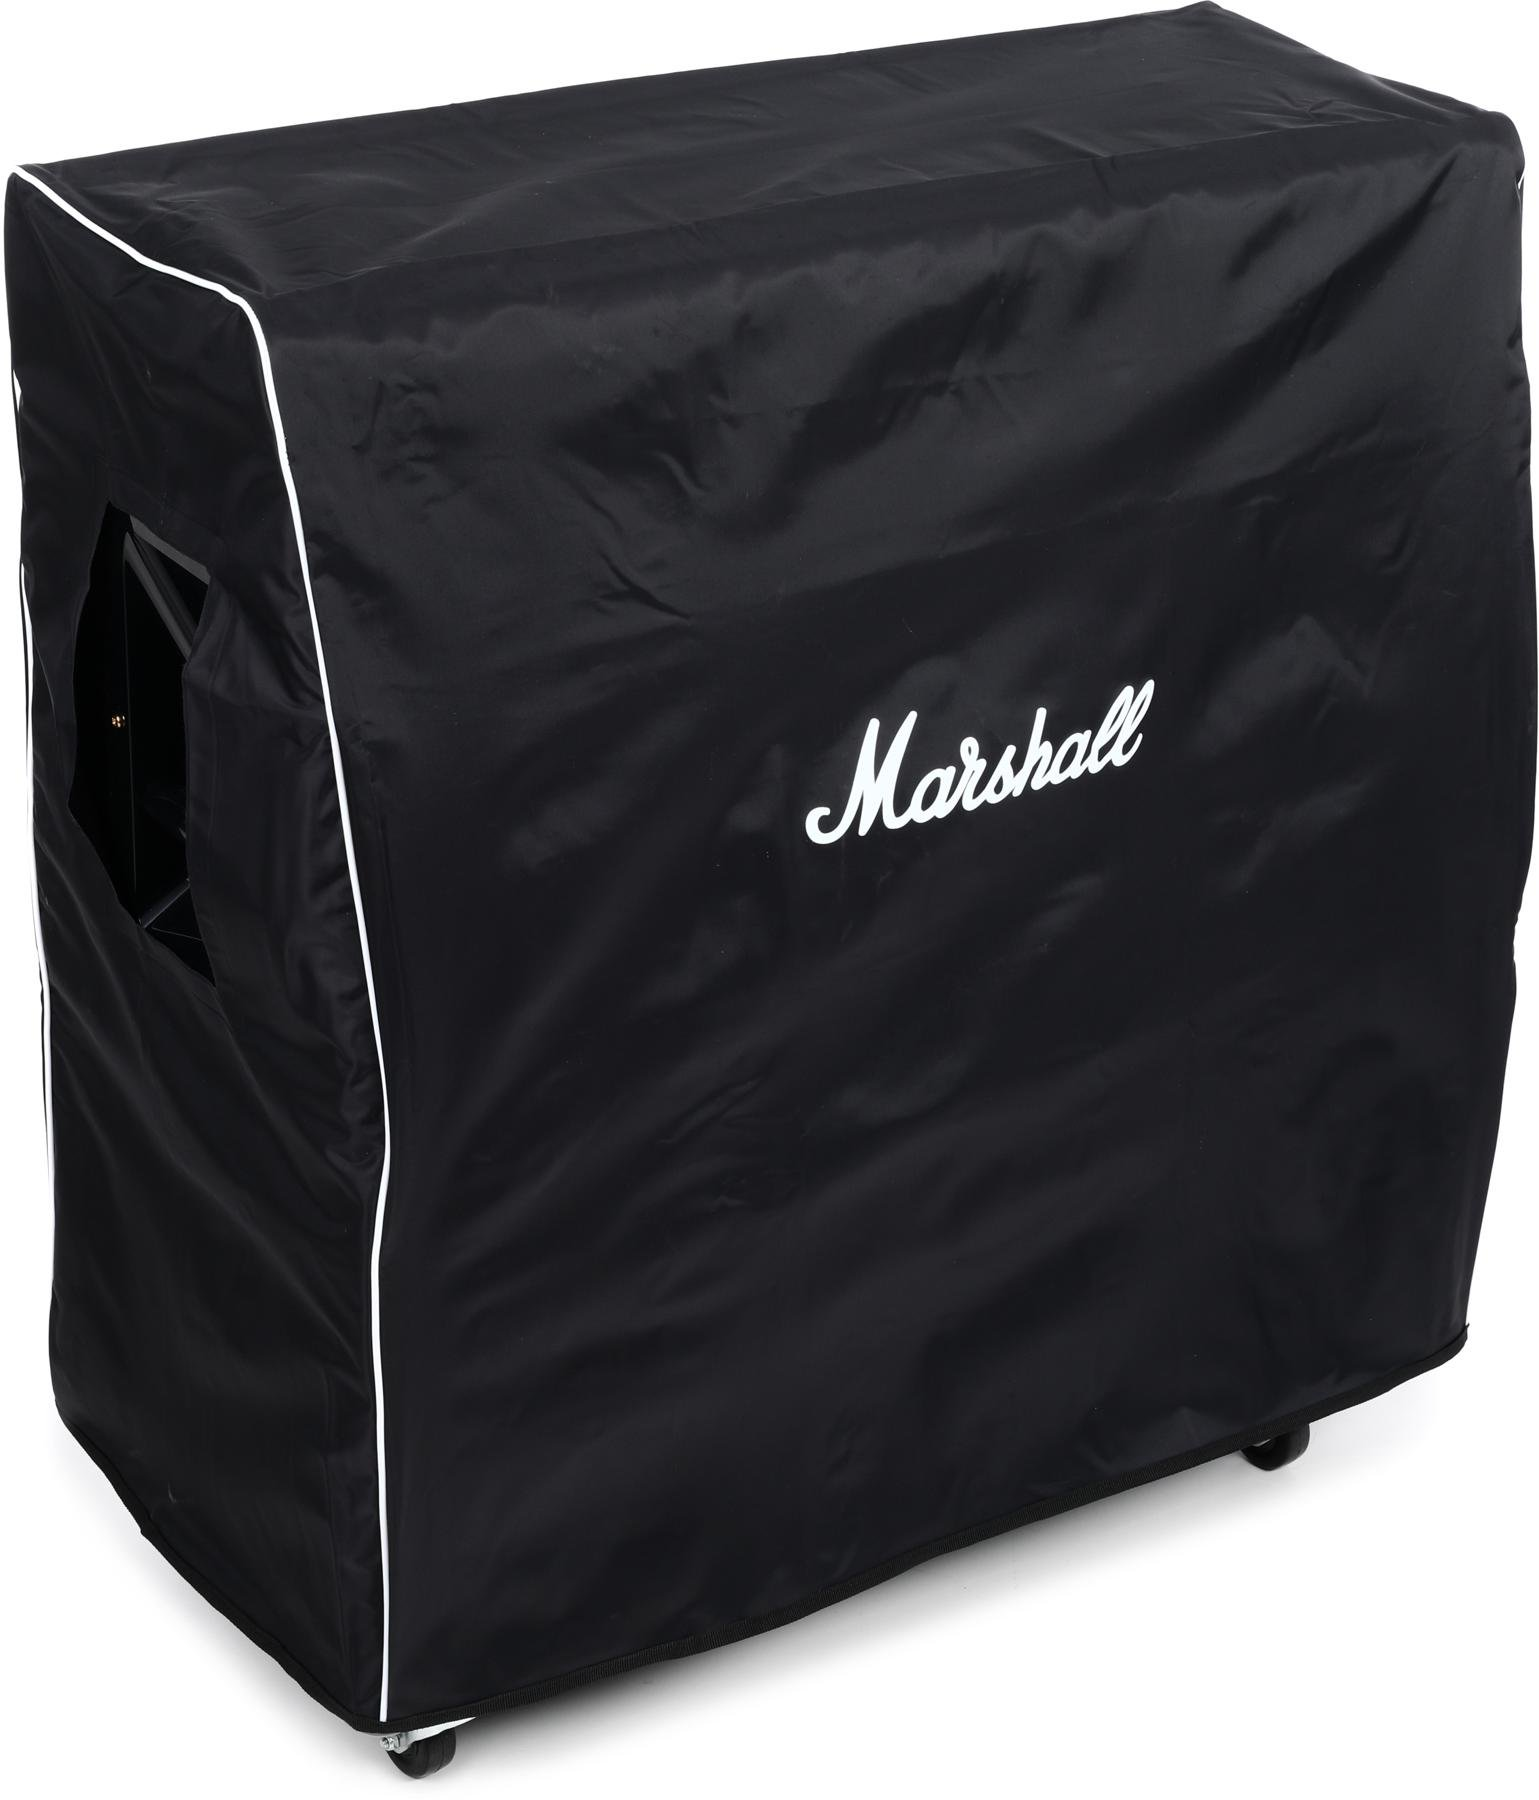 Marshall COVR 00022 1960A Angled Cabinet Cover